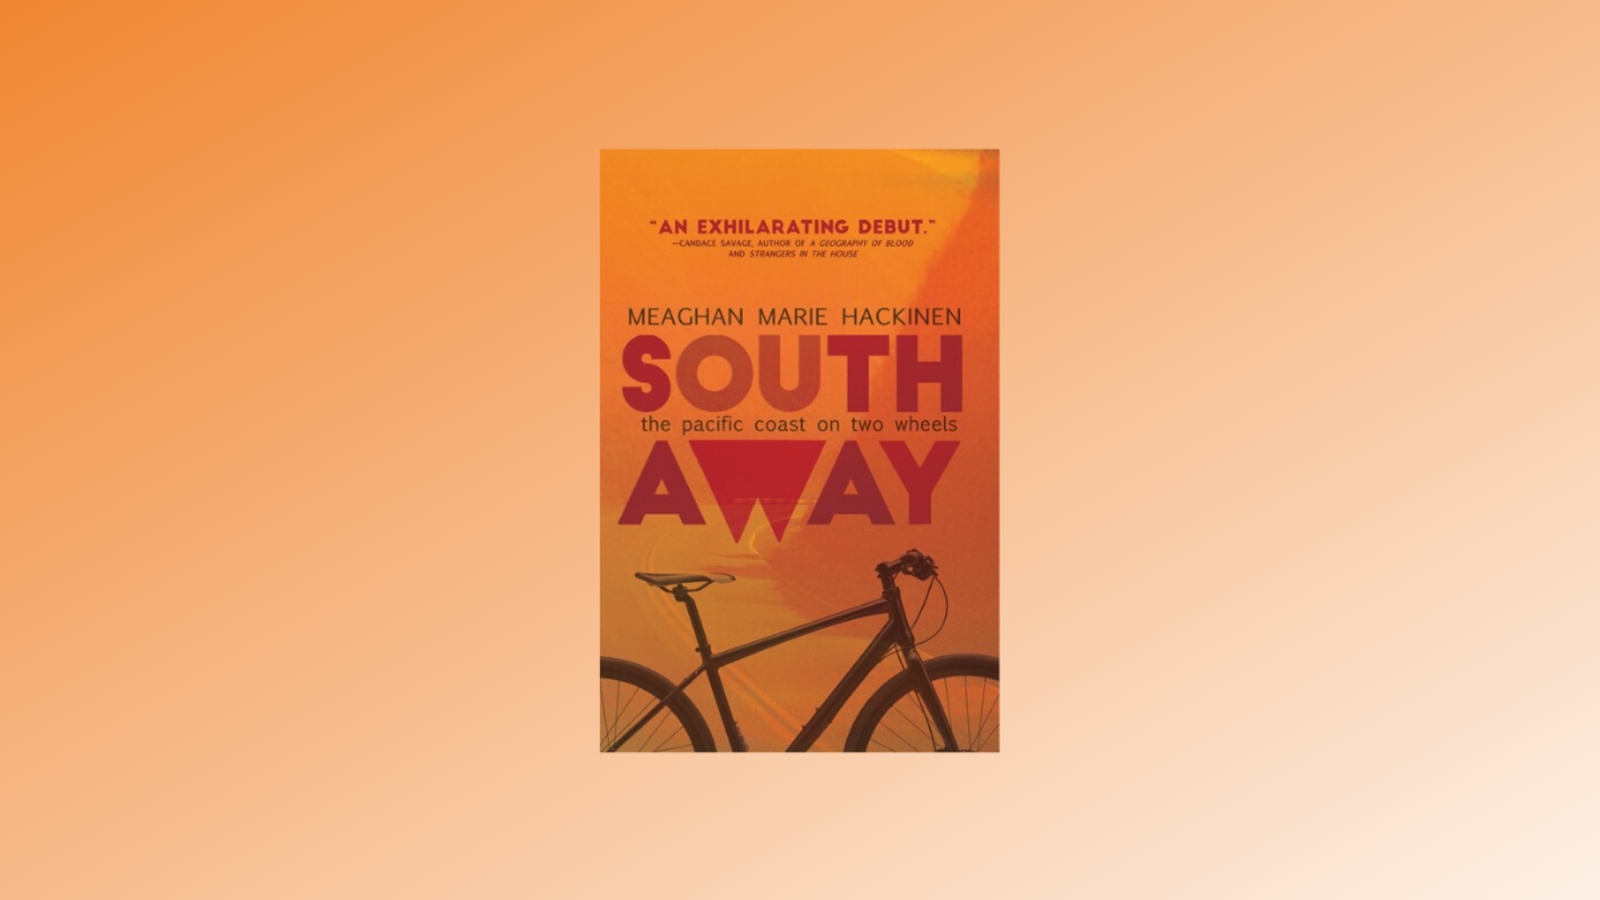 WIN: South Away by Meaghan Hackinen